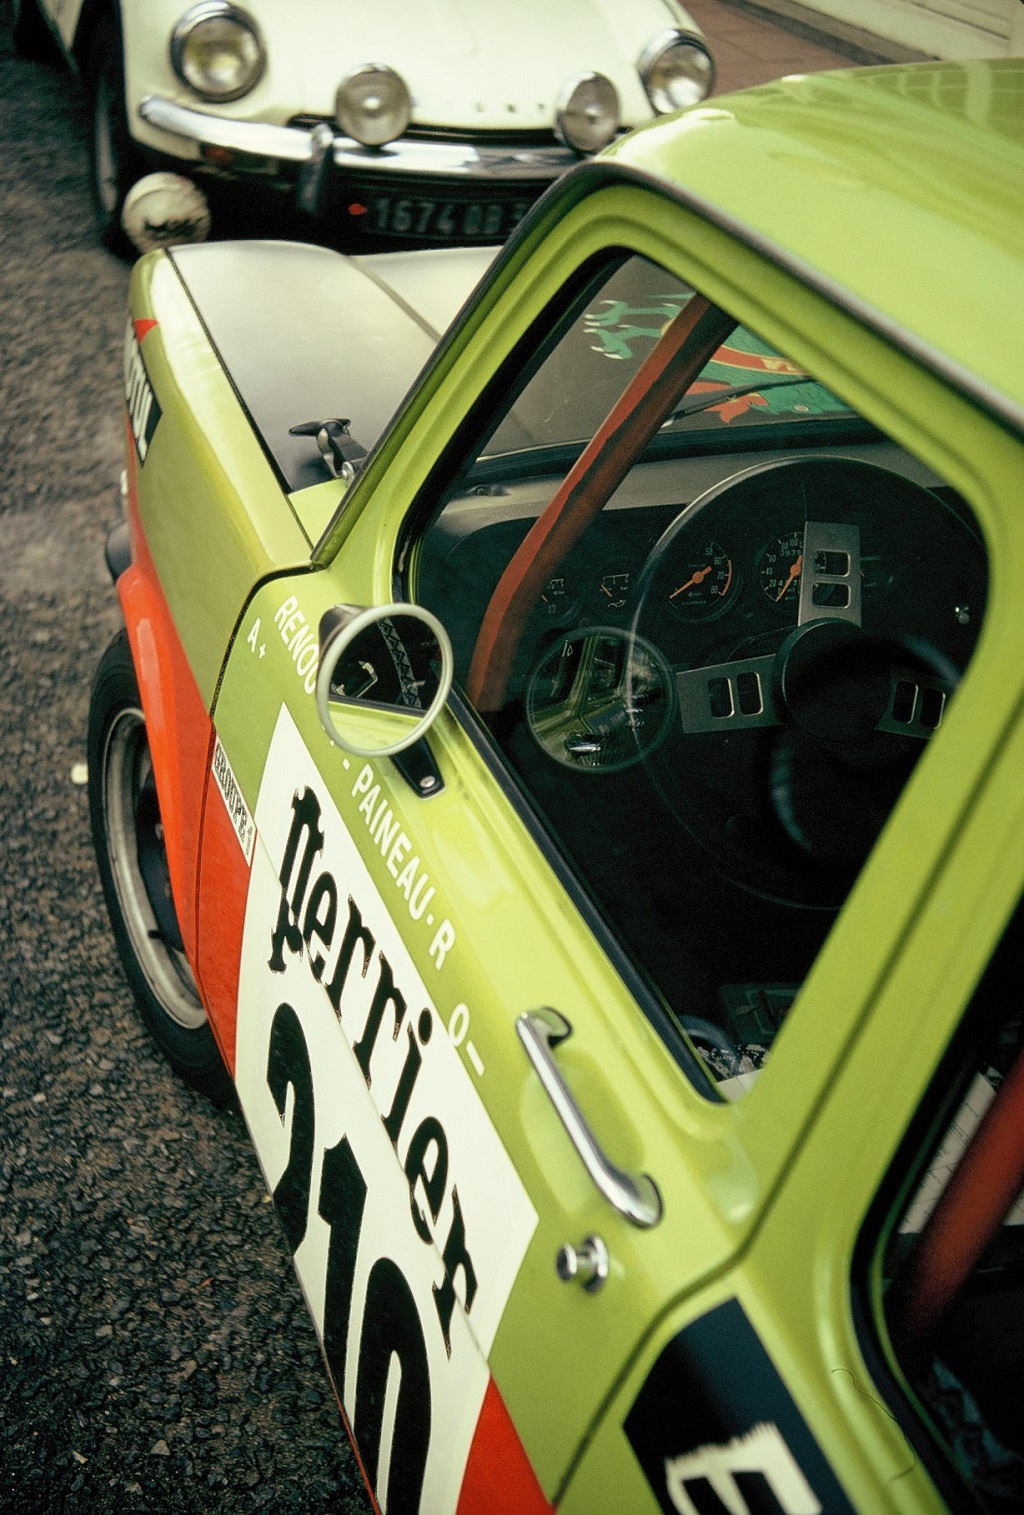 Renou - Simaca-1000-Rallye-2 - 1973 - Dinard - Grand-National-Tour-Auto - Photo-Thierry-Le-Bras